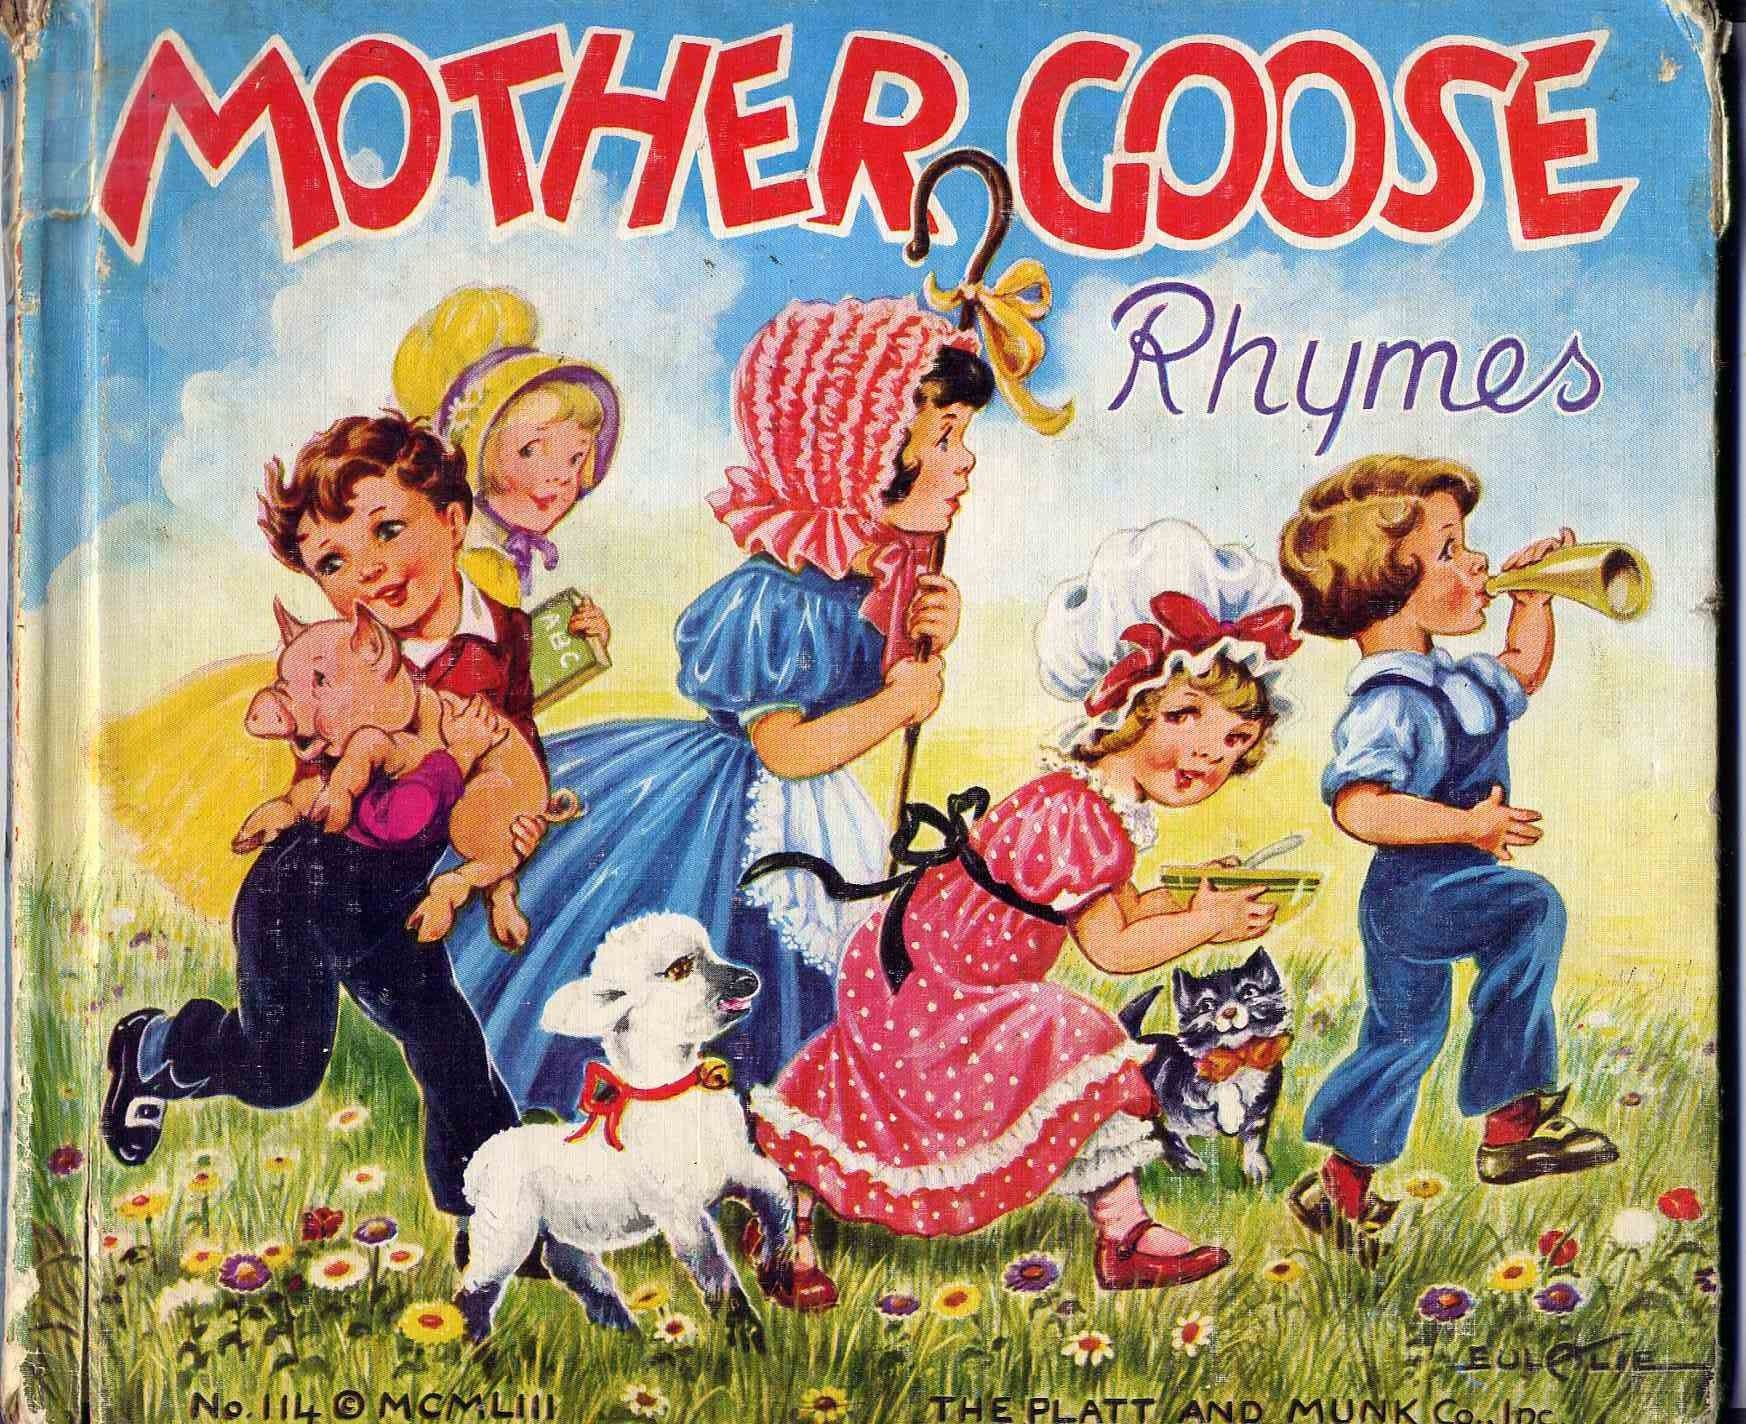 Mother Goose Rhymes illustrated by Eulalie, 1953, published by Platt and Munk